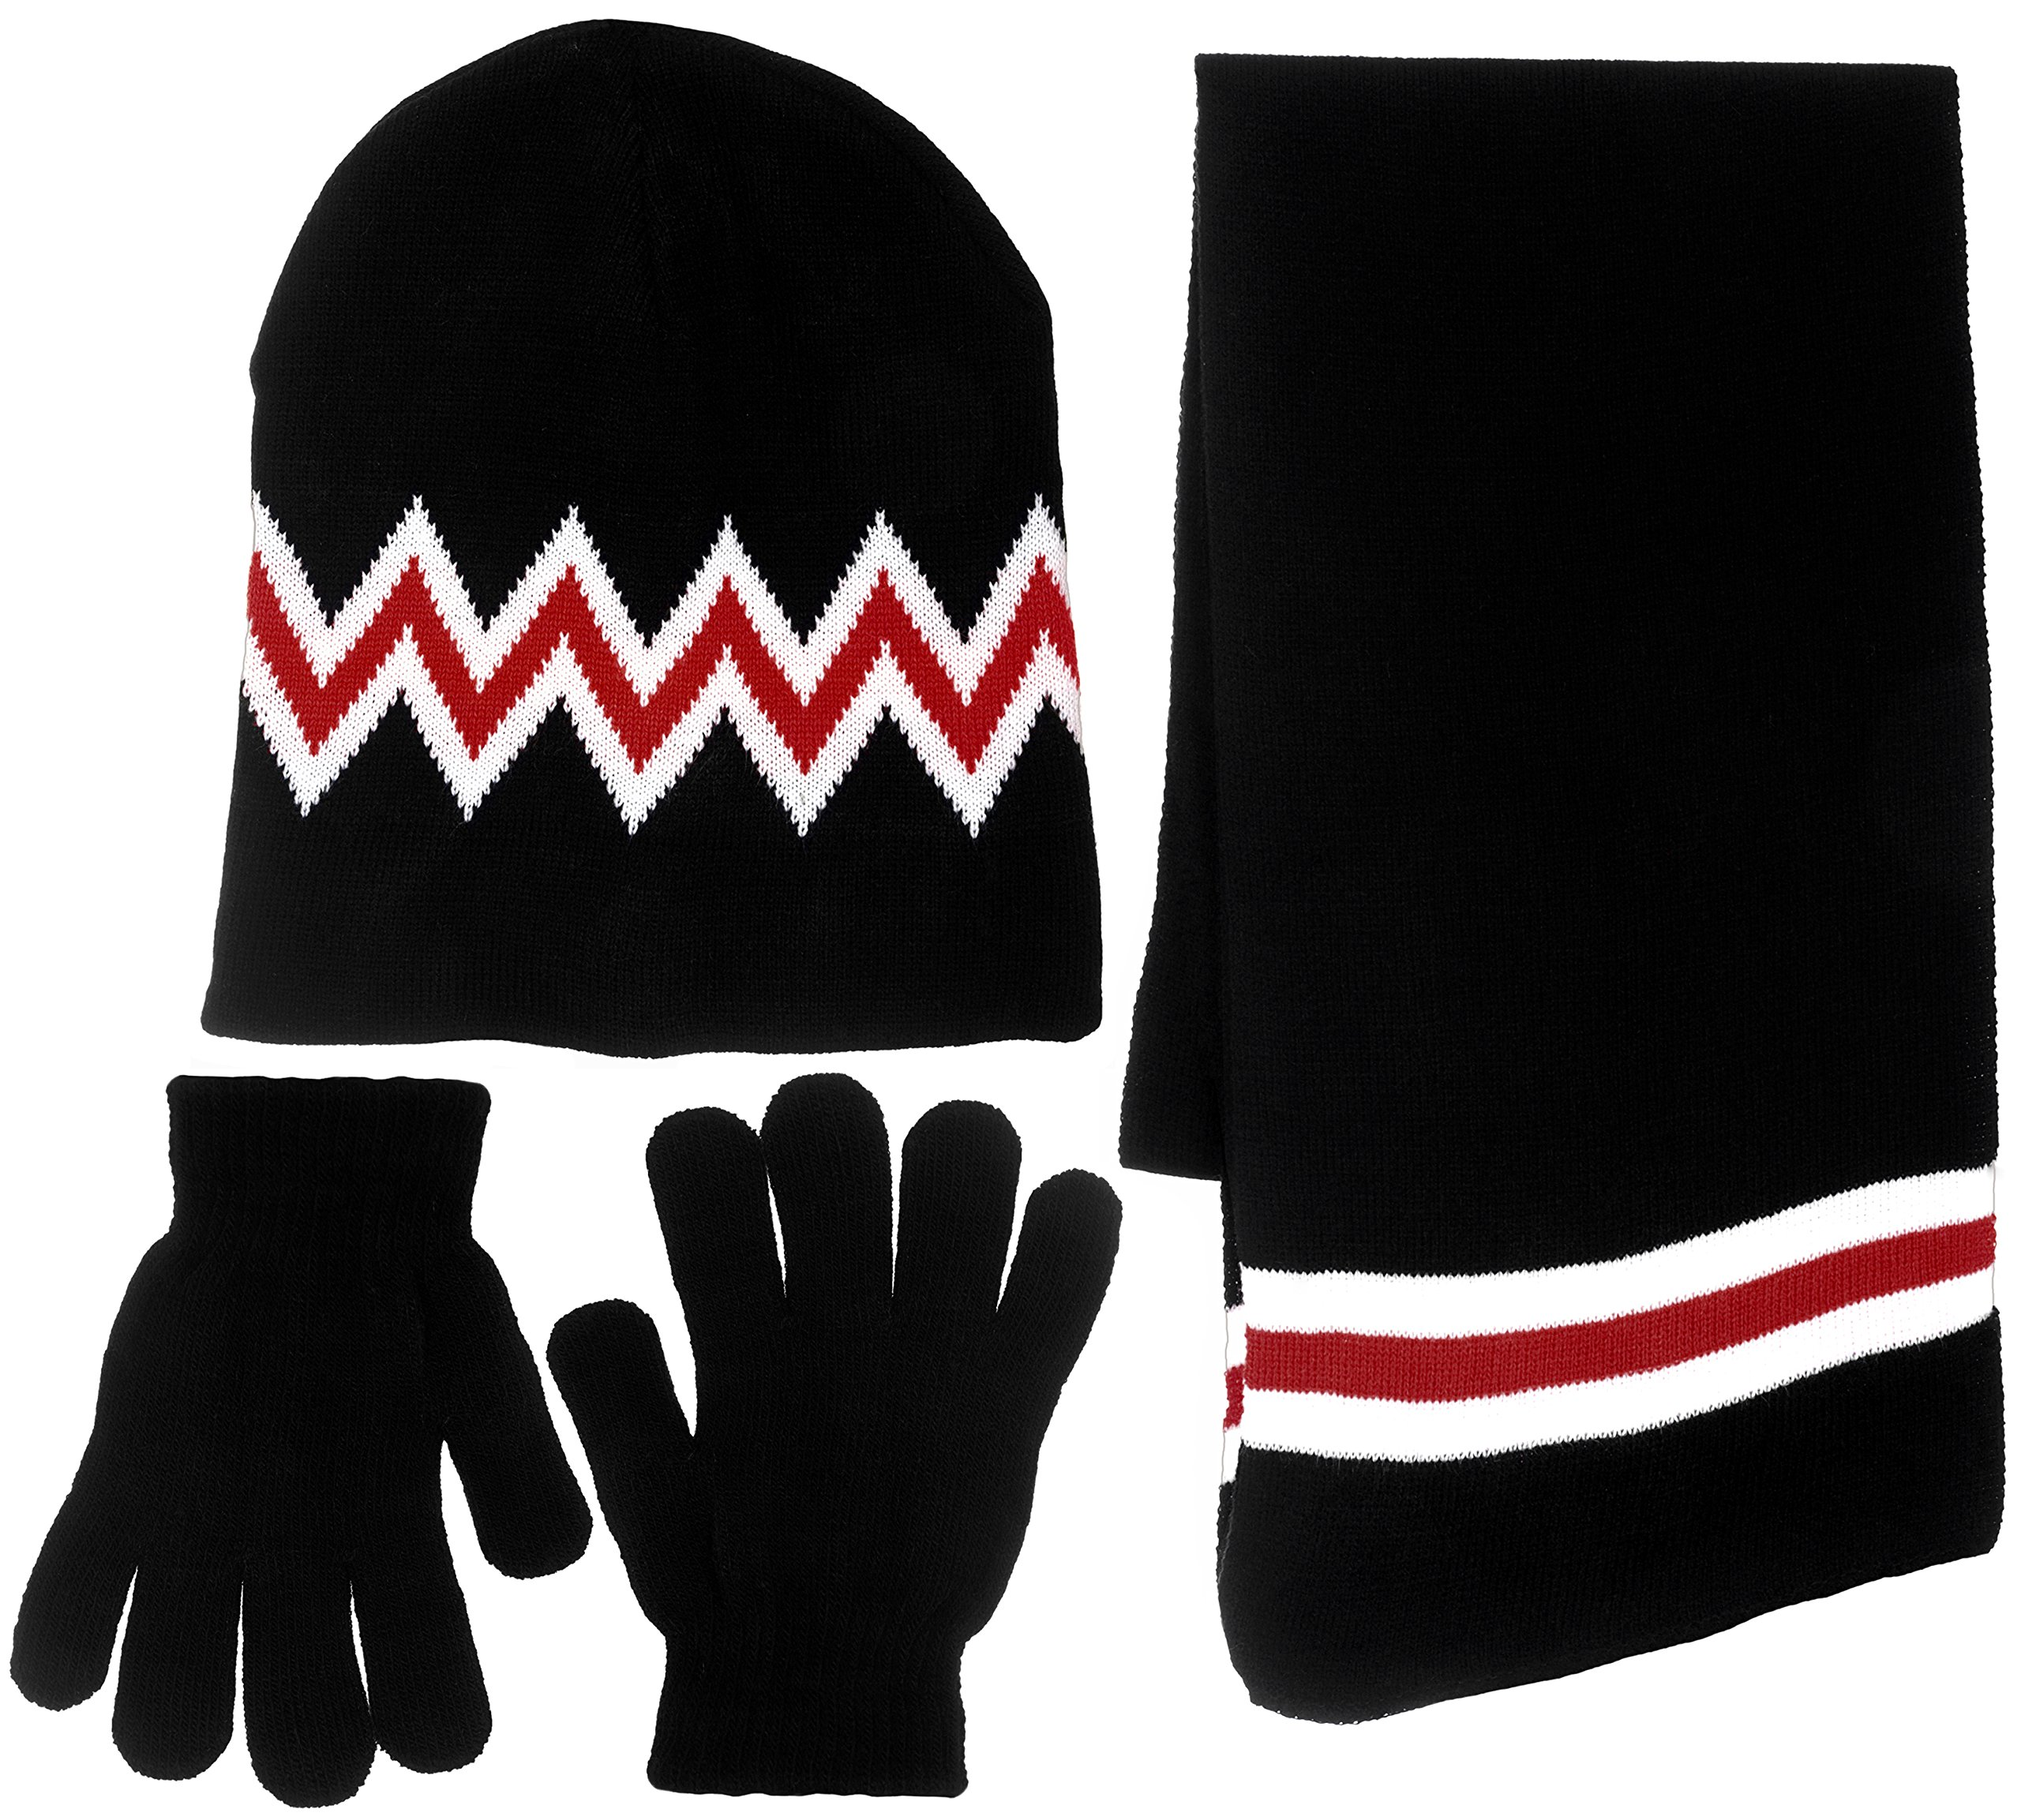 Boy's 3 Piece Knit Hat, Scarf & Gloves Set (Black-Red)